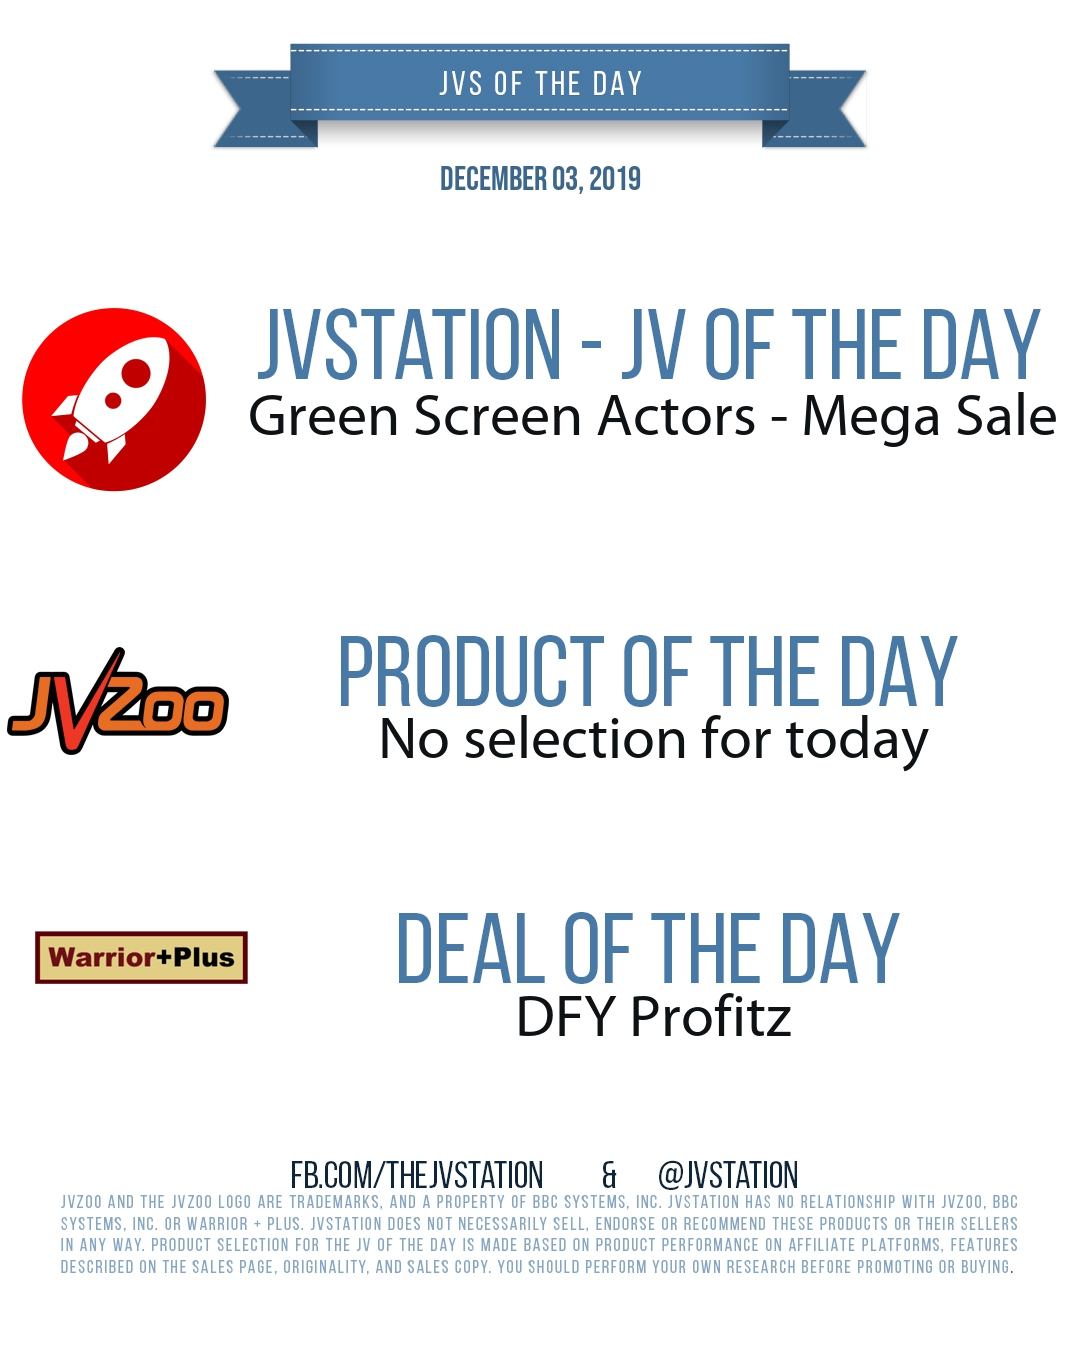 JVs of the day - December 03, 2019